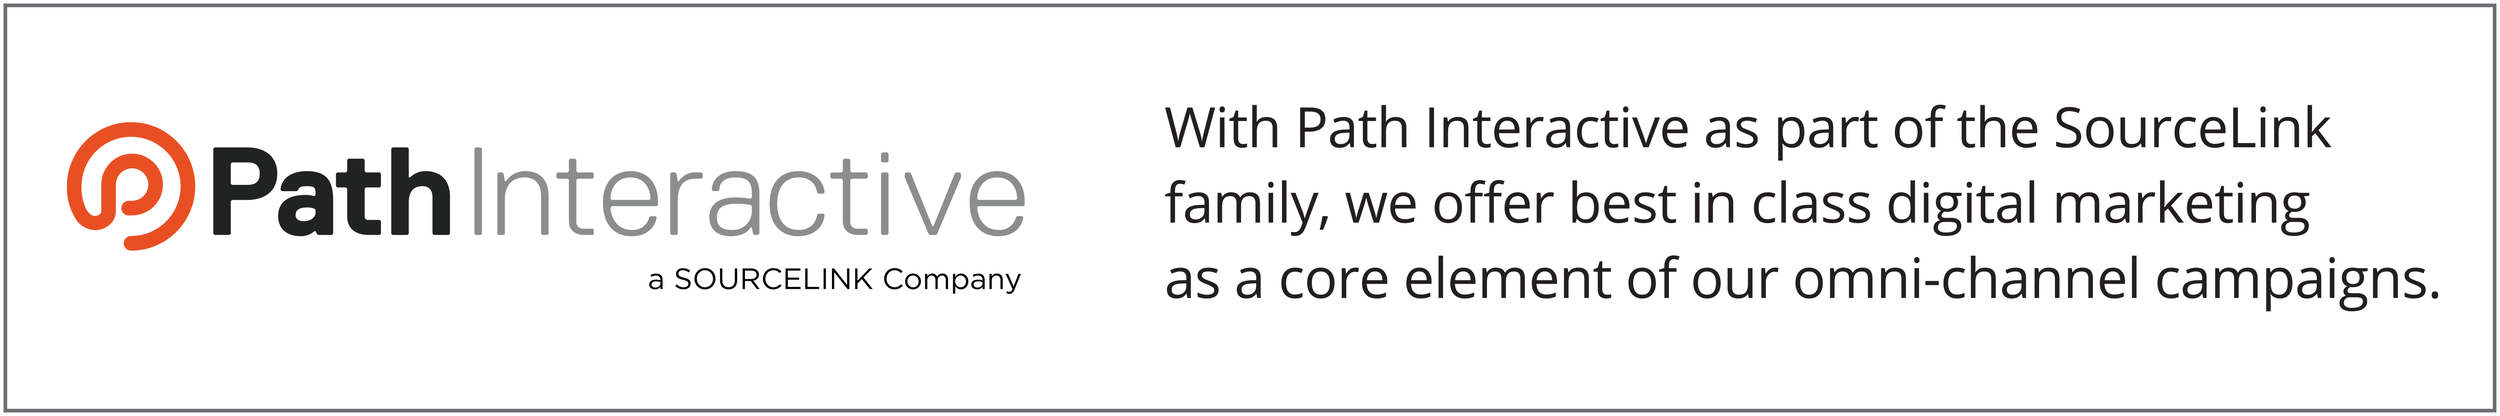 SourceLink and Path Interactive